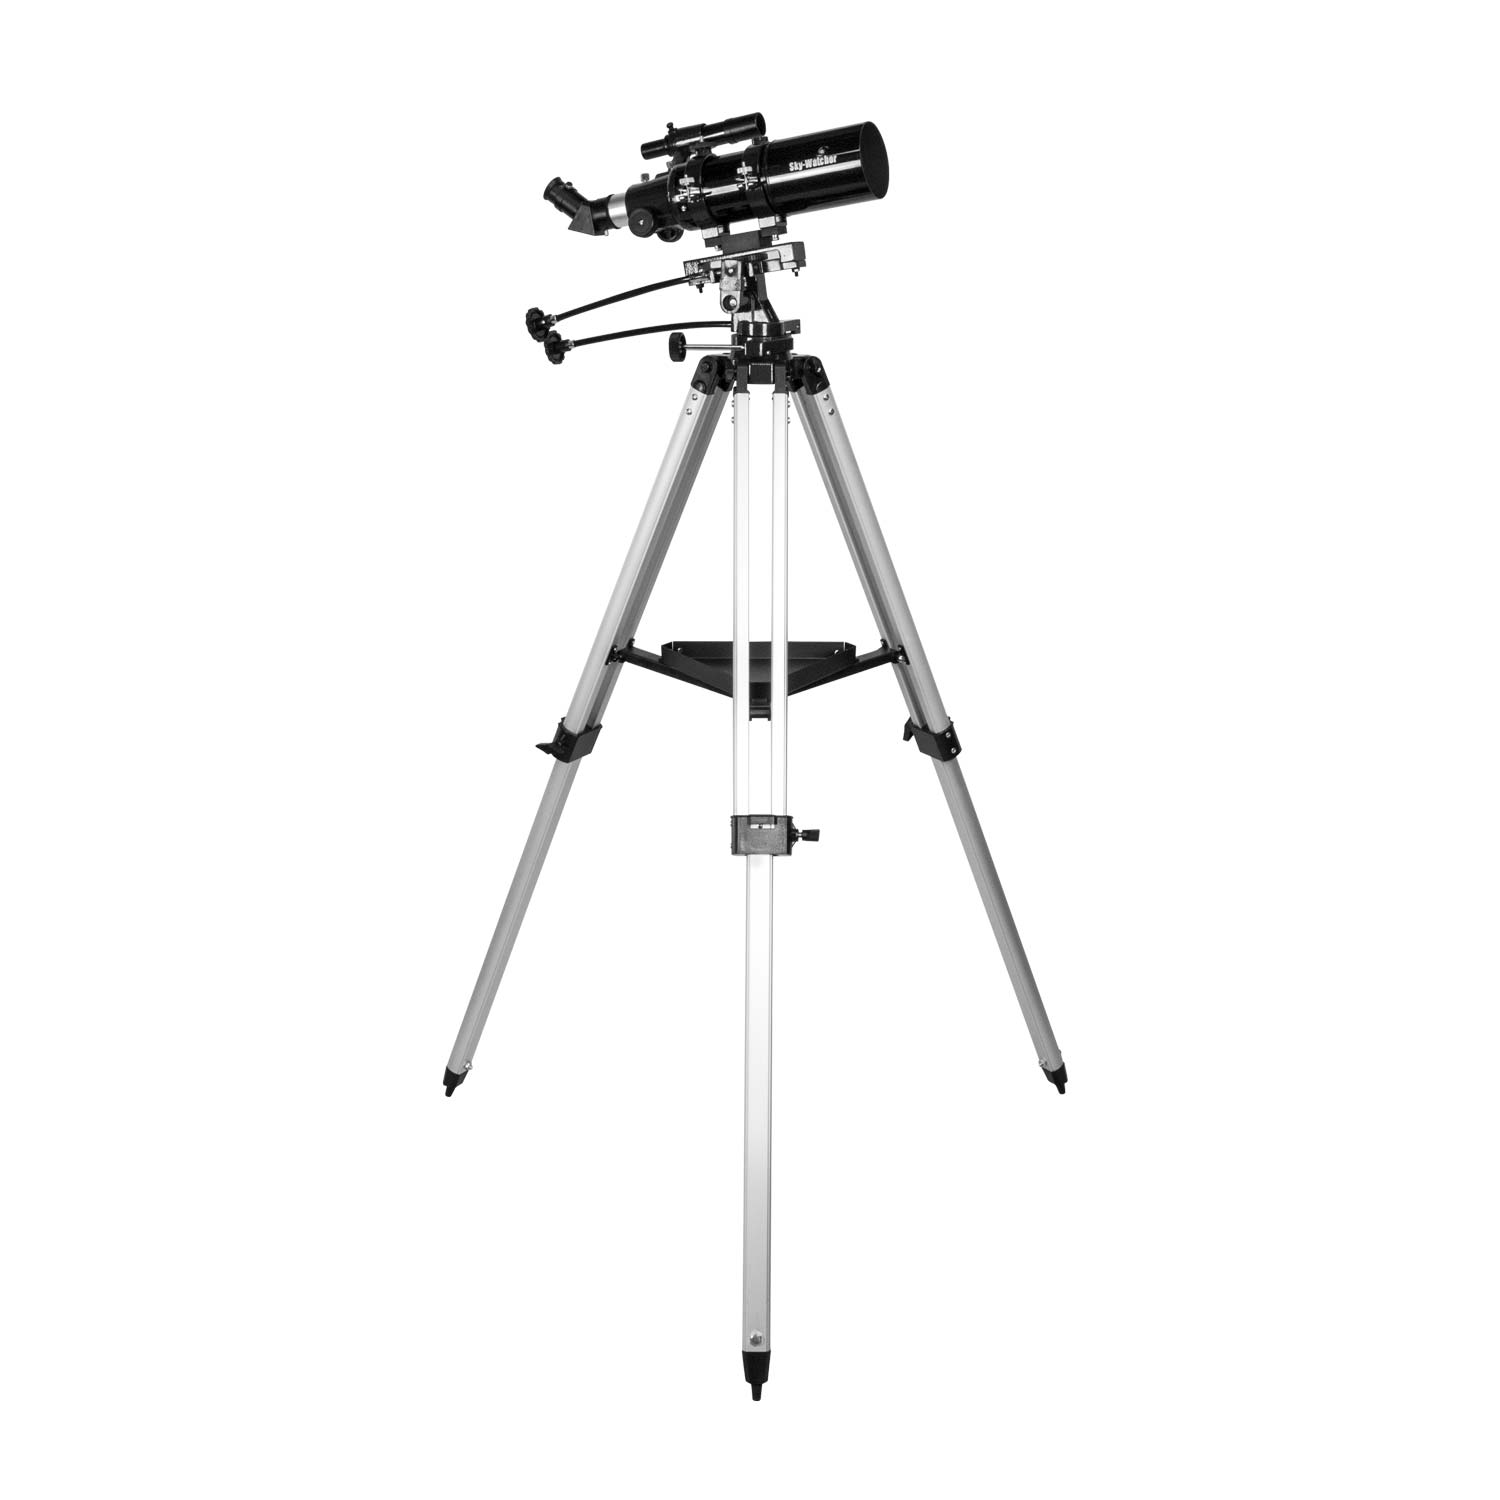 80 AZ3 REFRACTOR, Lightweight and portable •Quick to set up